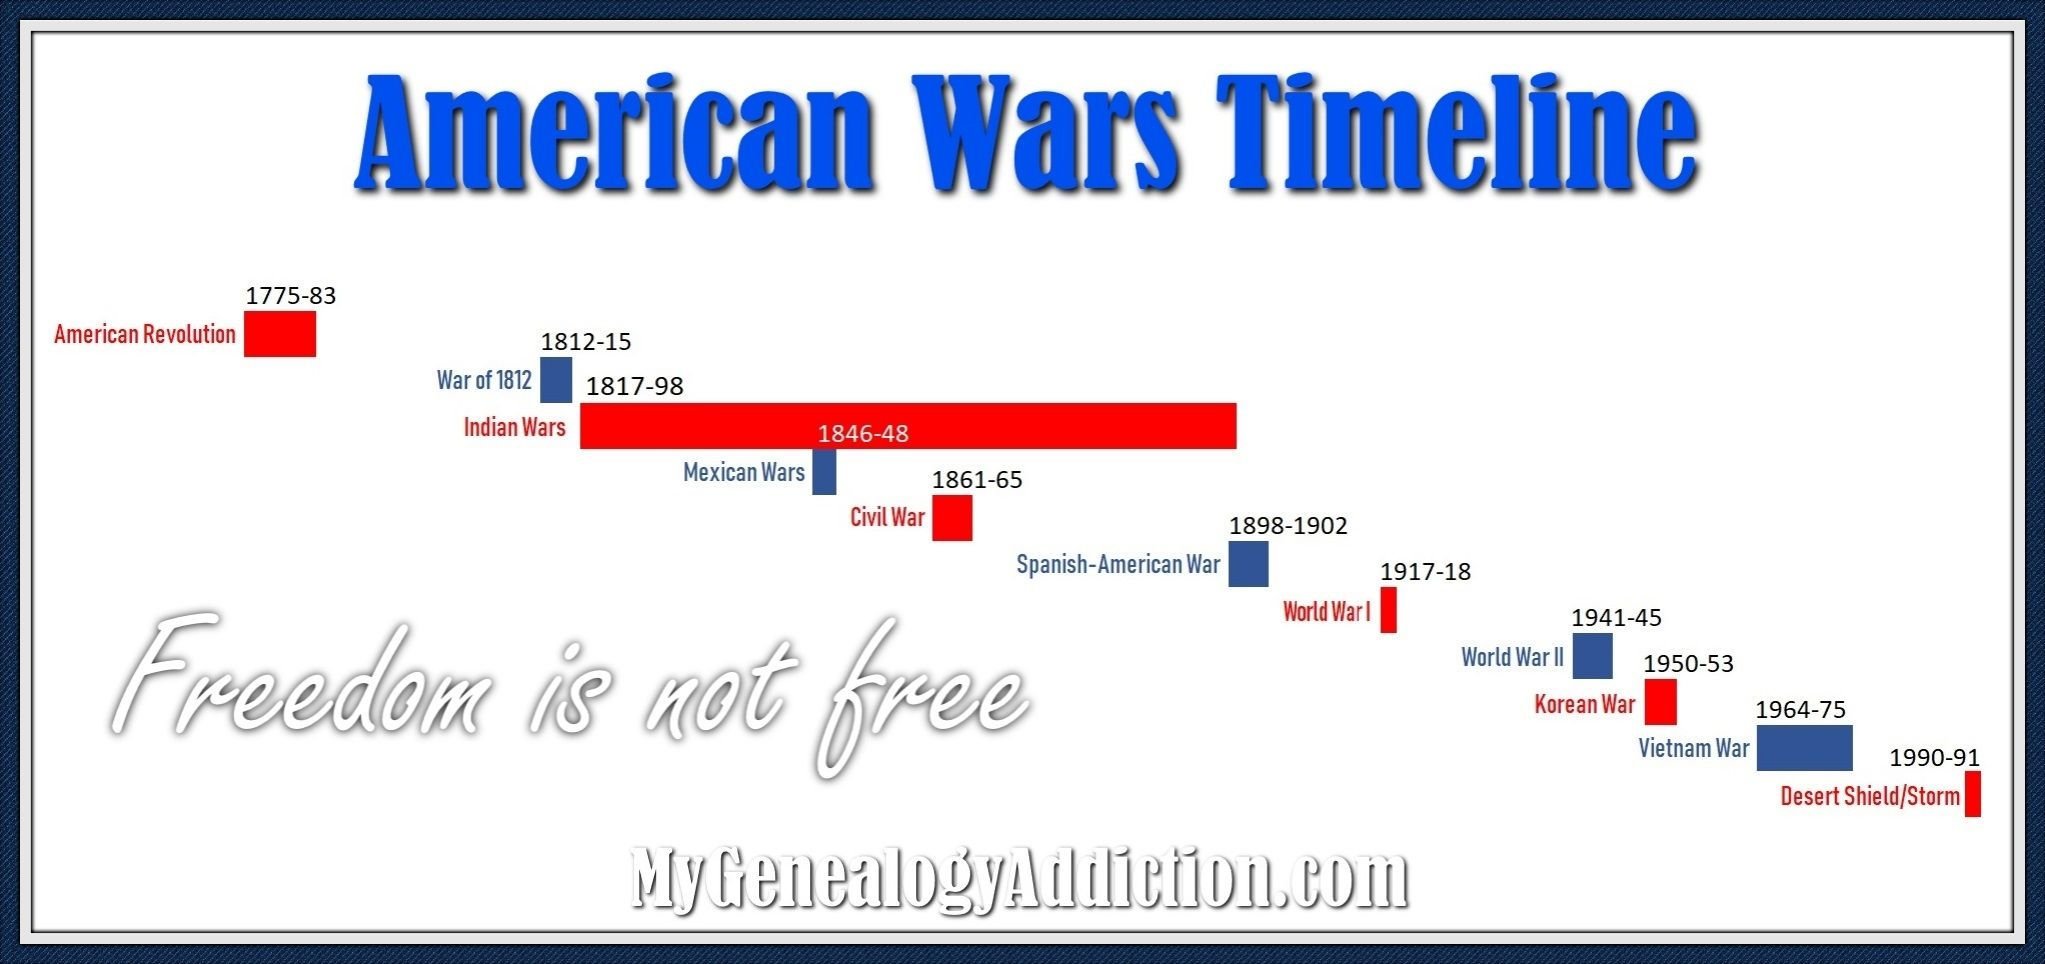 American Wars Timeline And Statistics